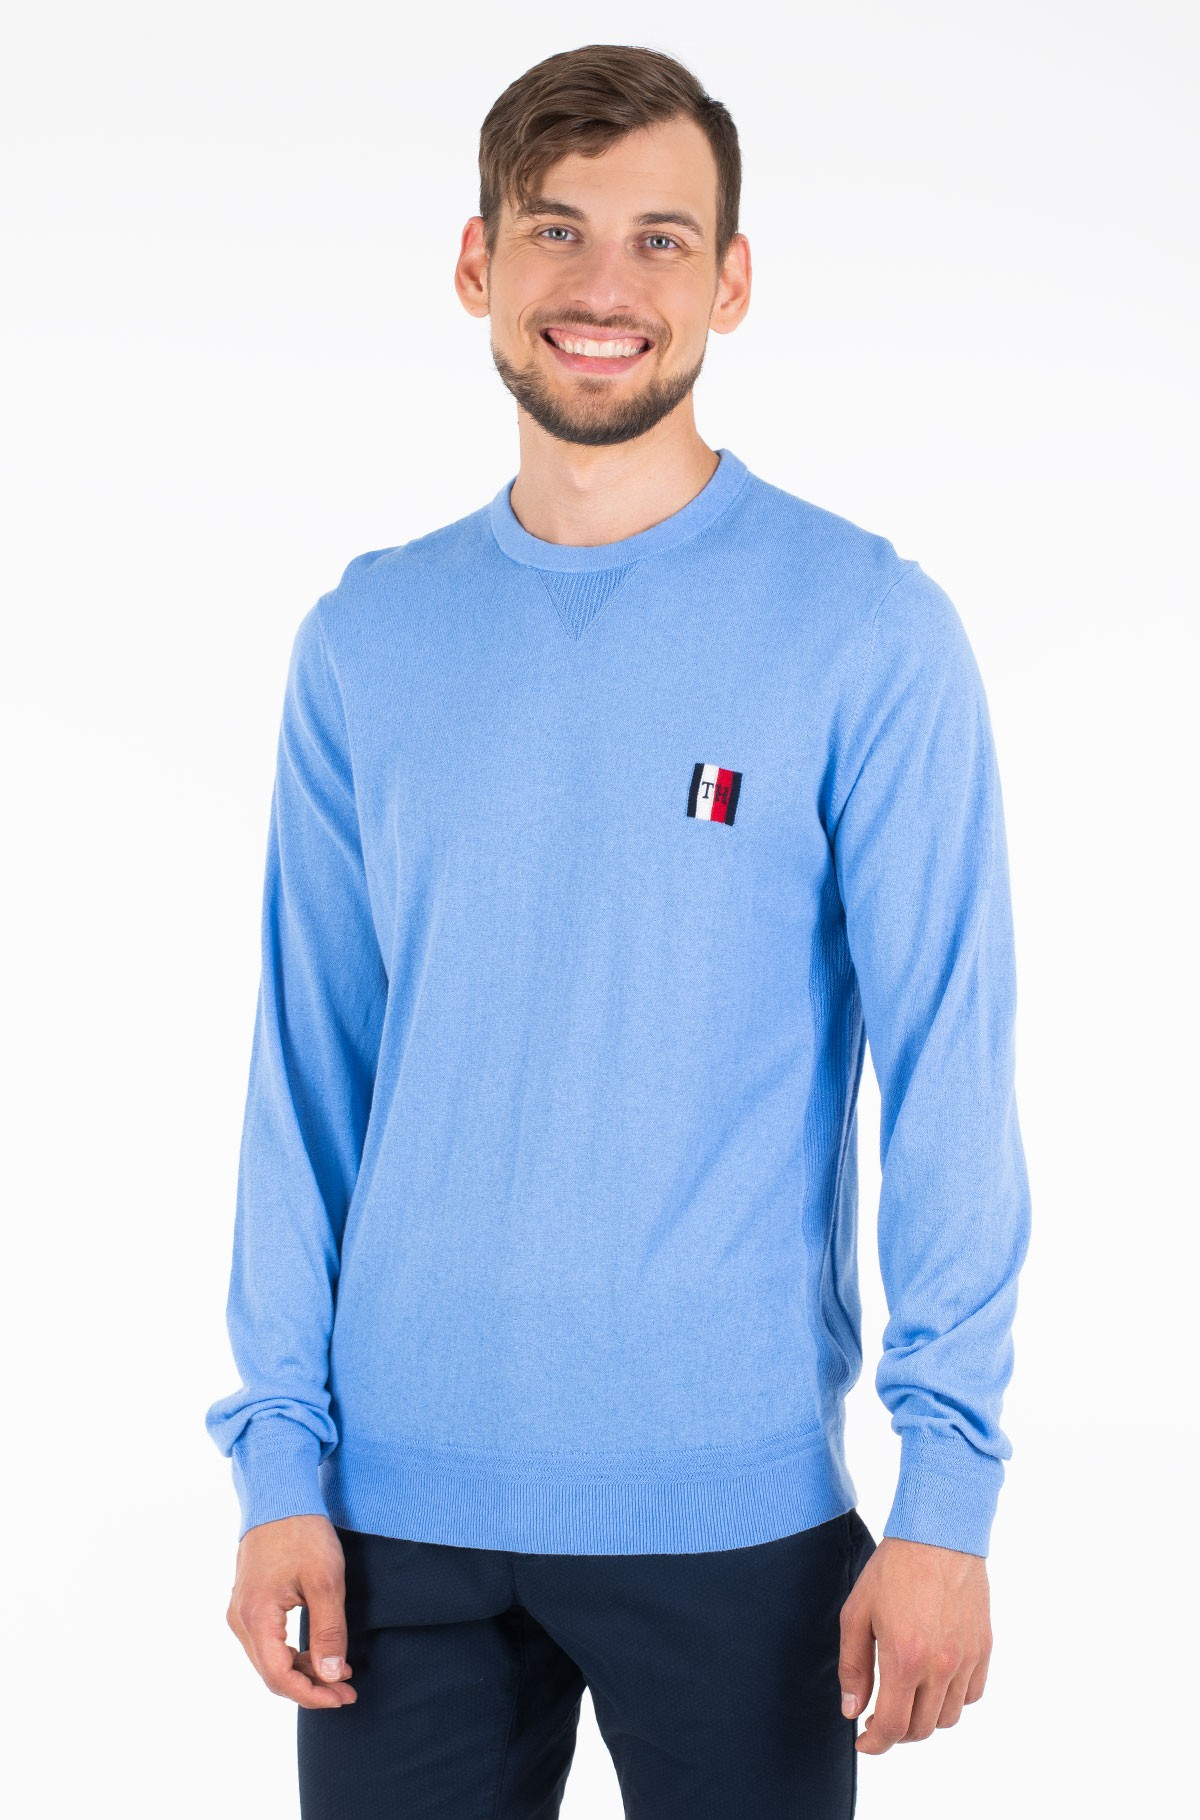 Sviiter PERFORMANCE ORGANIC COTTON CREW-full-1